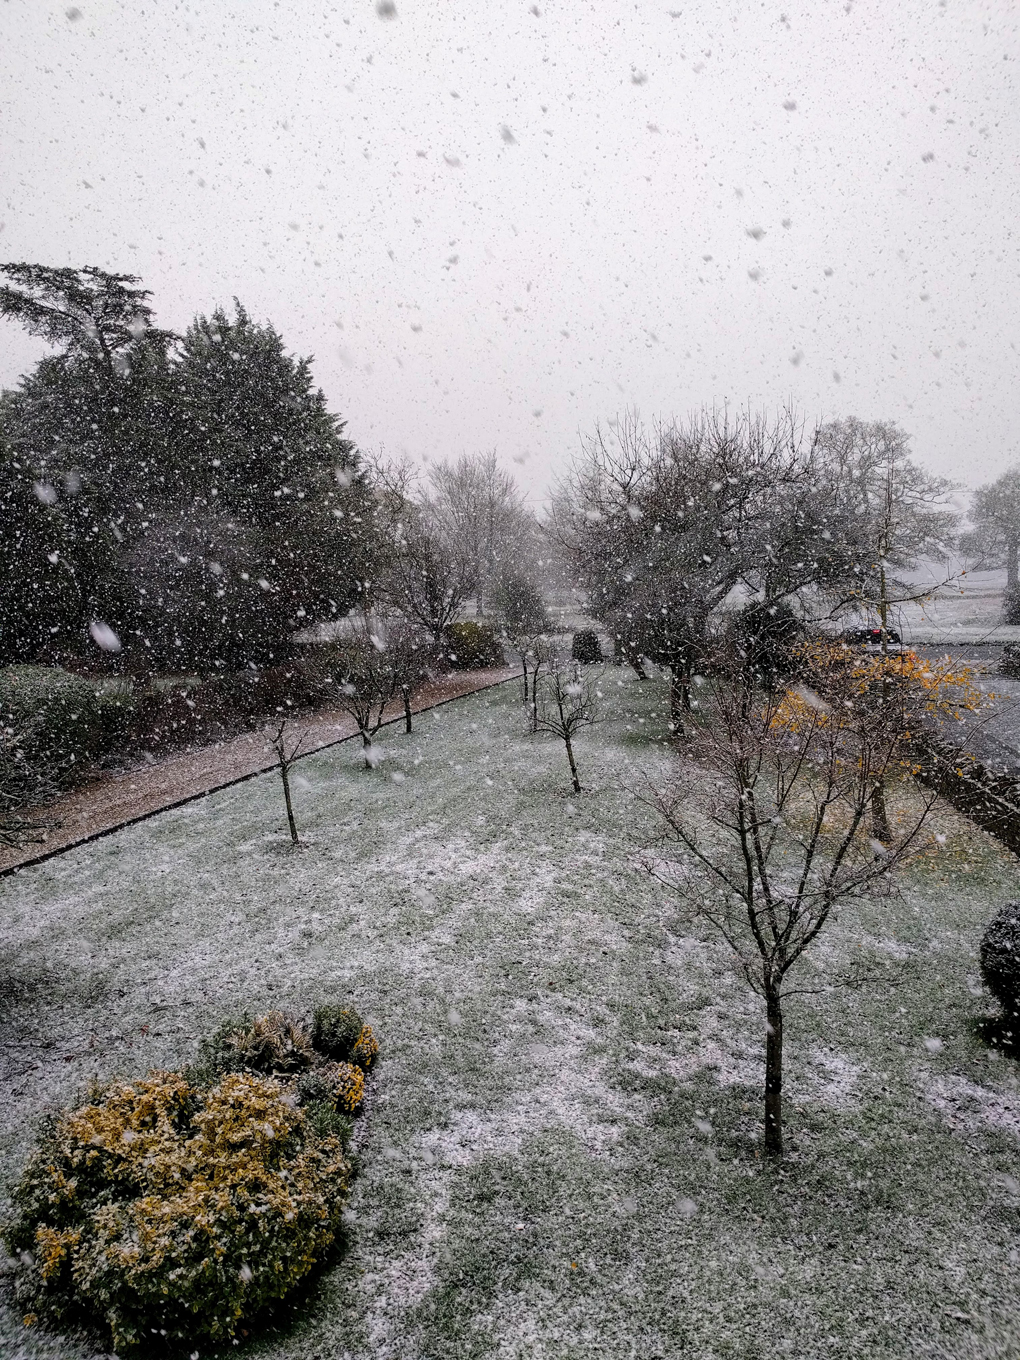 snow falling over a front garden in mid-November.